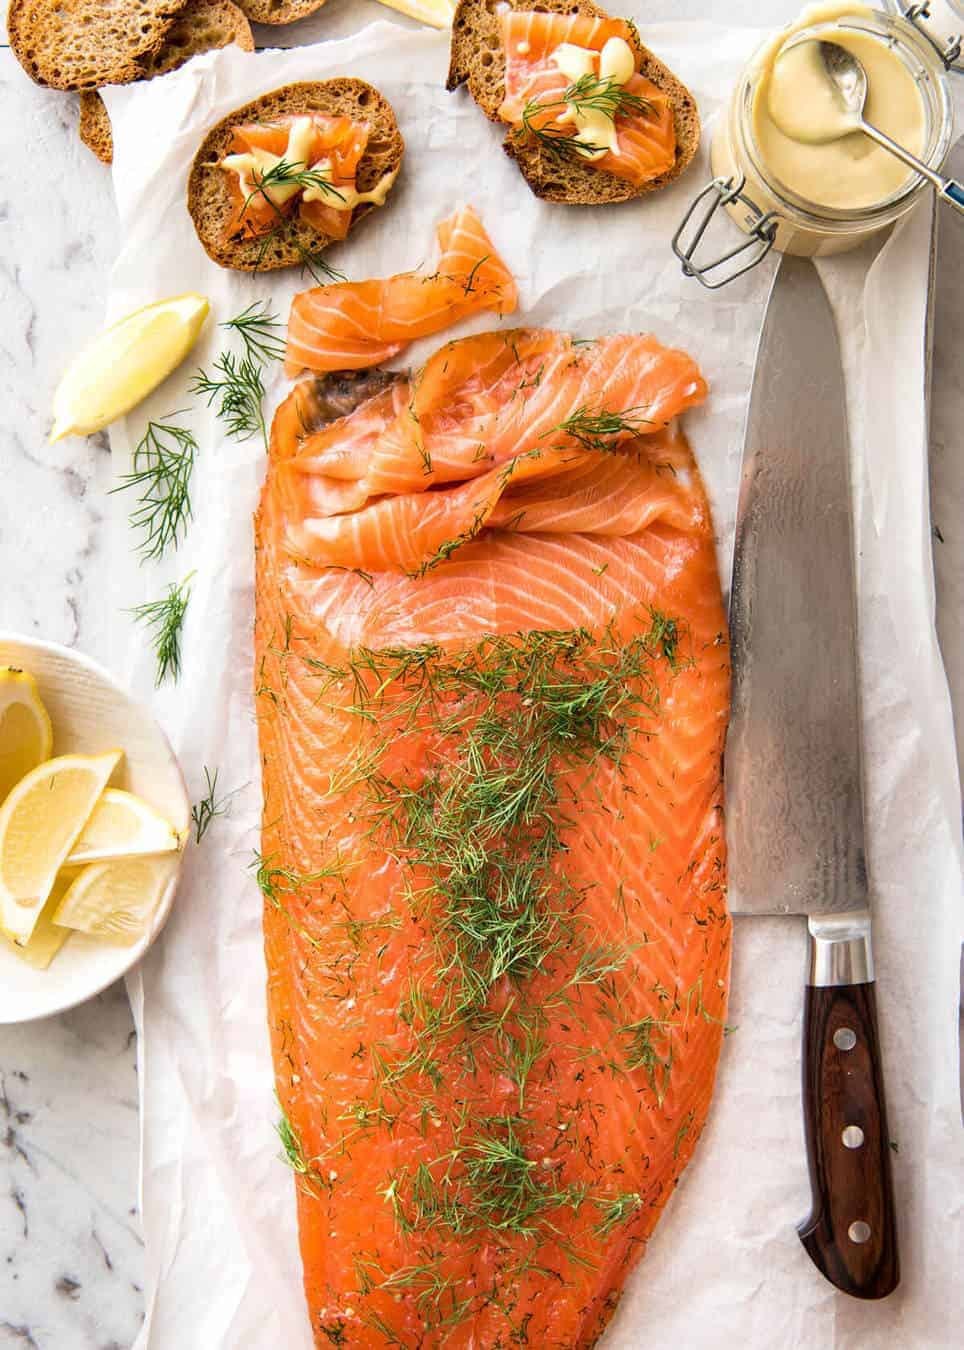 Homemade Cured Salmon Gravlax is arguably the easiest luxury food to make at home at a fraction of the cost of store bought! recipetineats.com